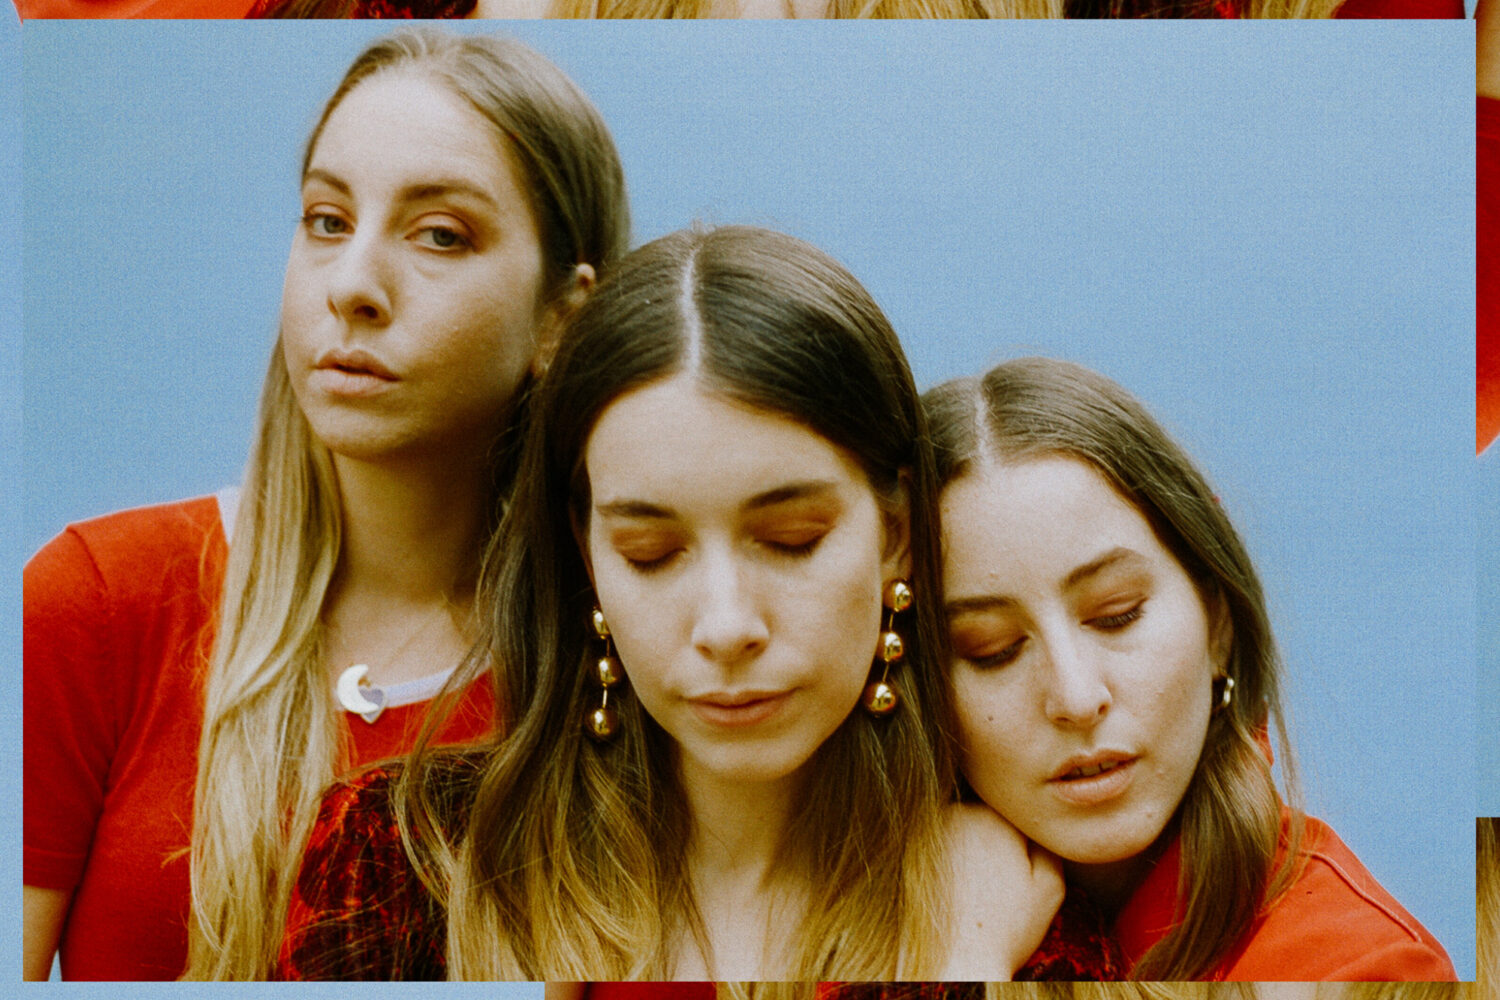 Watch Haim cover The Strokes for Radio 1's Piano Session